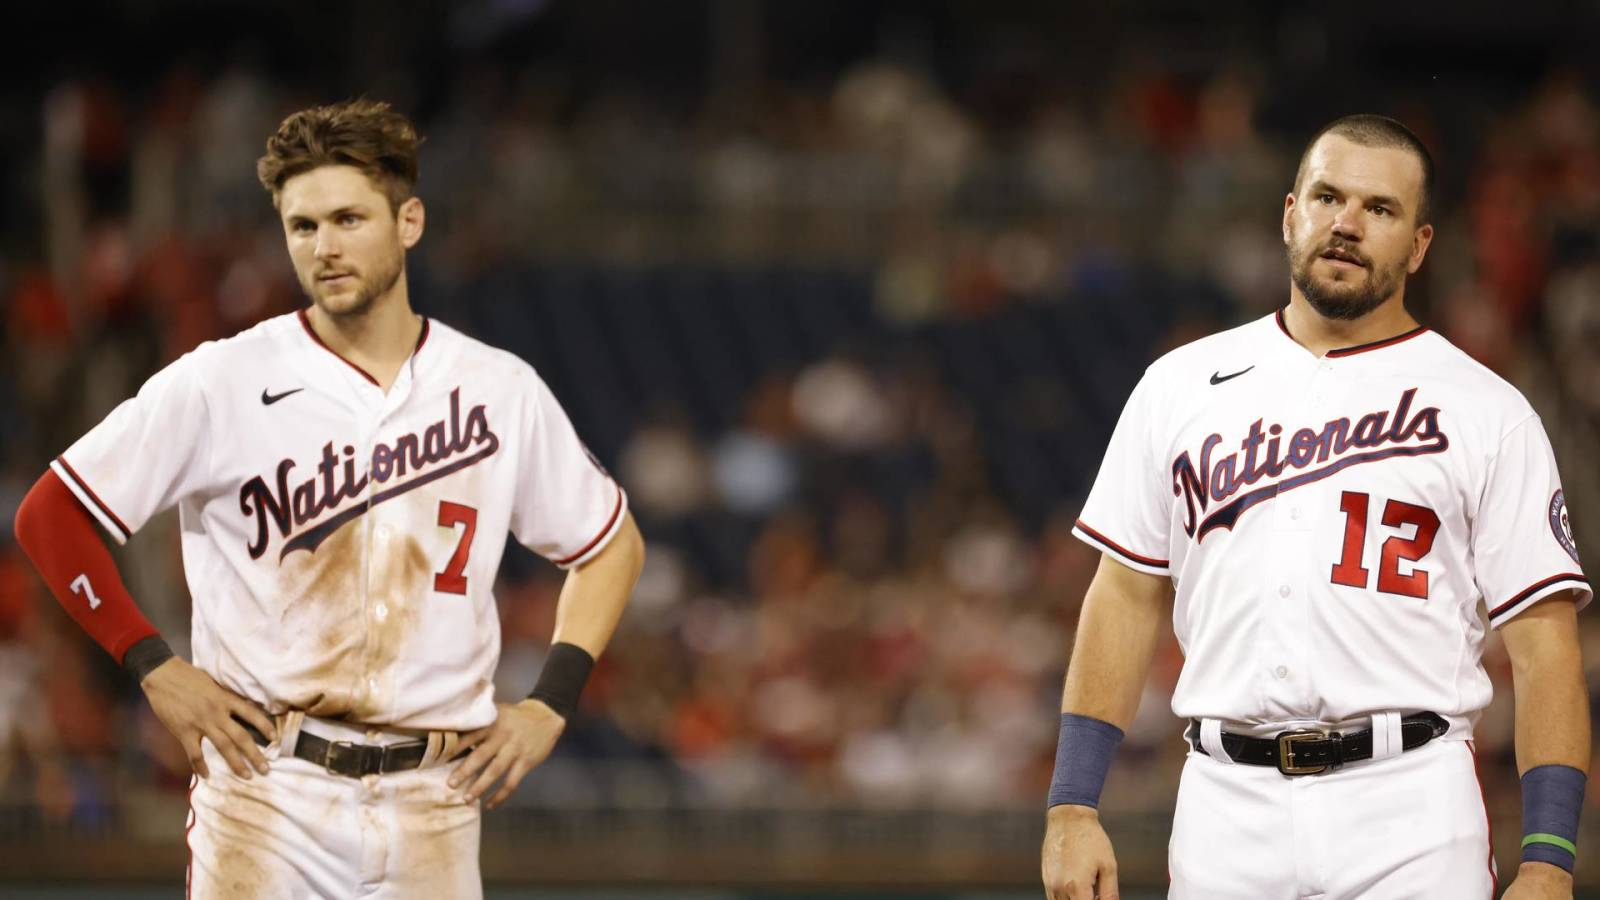 Recurring shortage of depth makes Nationals a team to be reckoned with